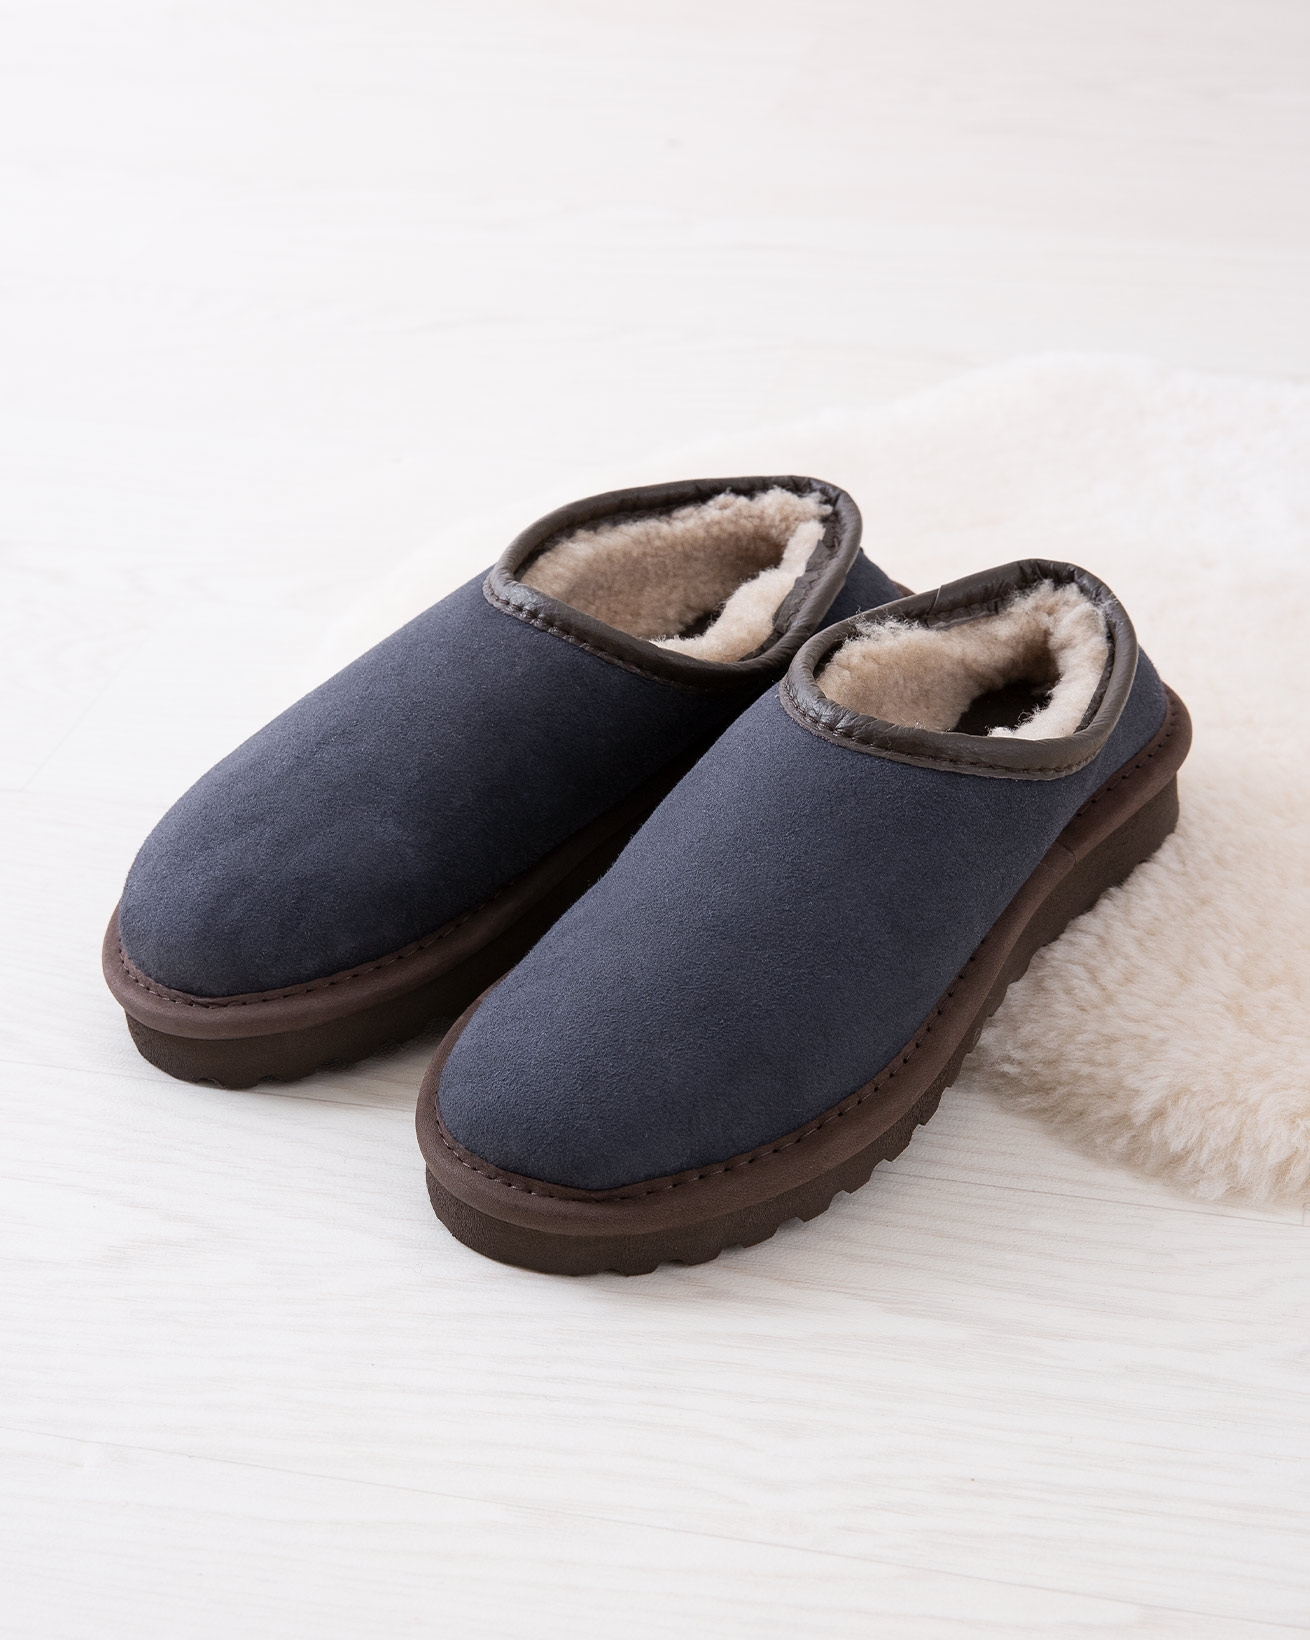 6618_ladies-clogs_blue-iris_lifestyle_lfs.jpg